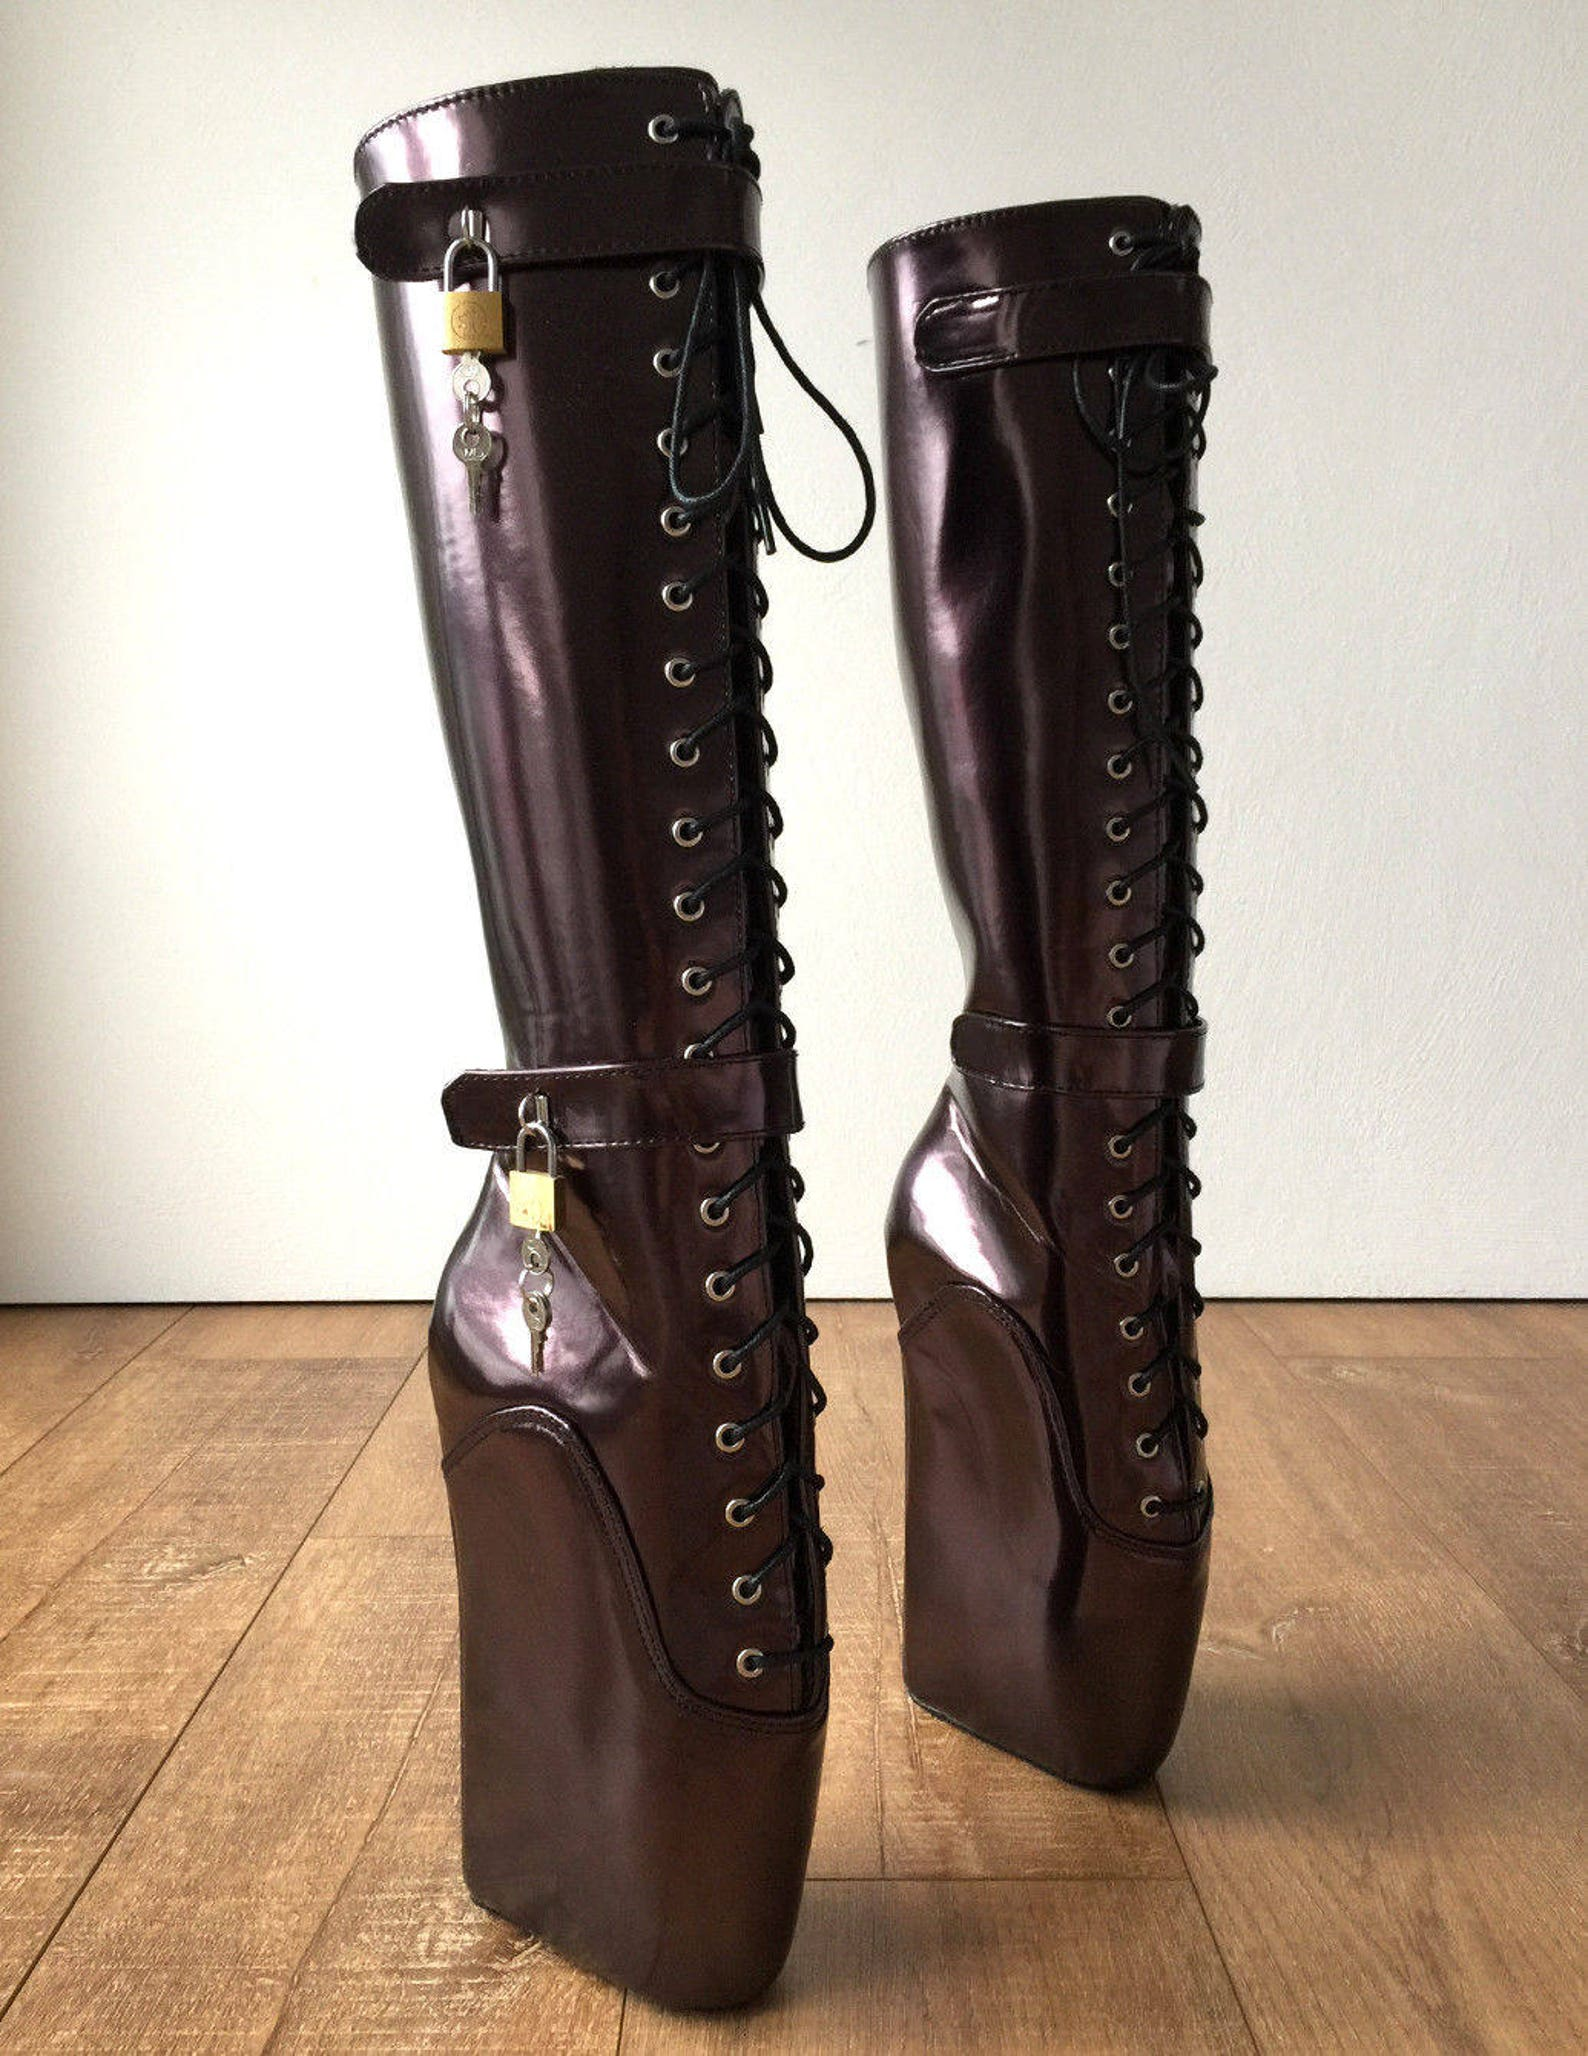 beginner quan hoof heelless fetish pinup ballet lockable wedge boot eggplant